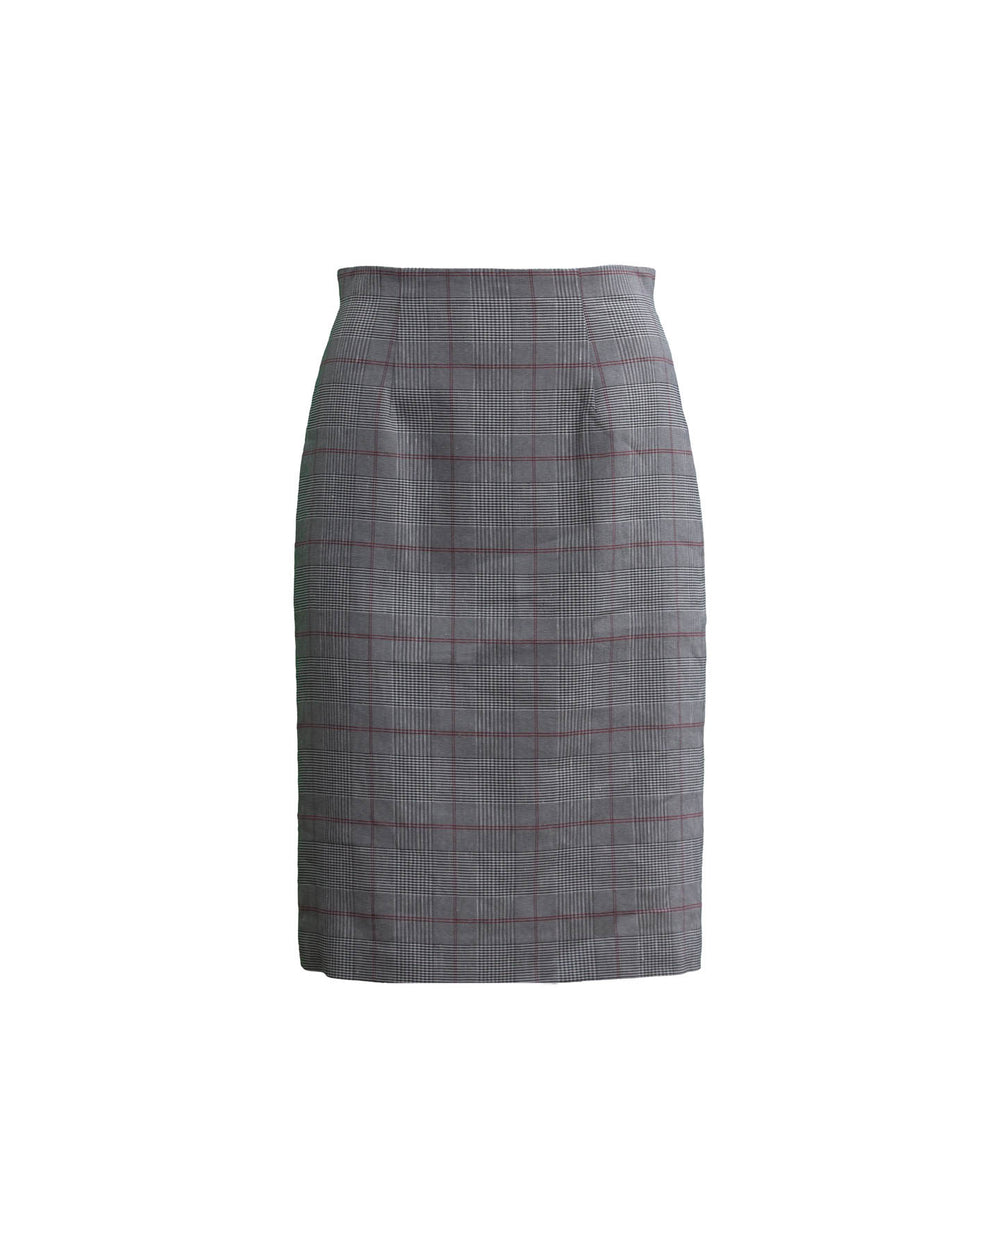 Rebecca Taylor Skirts